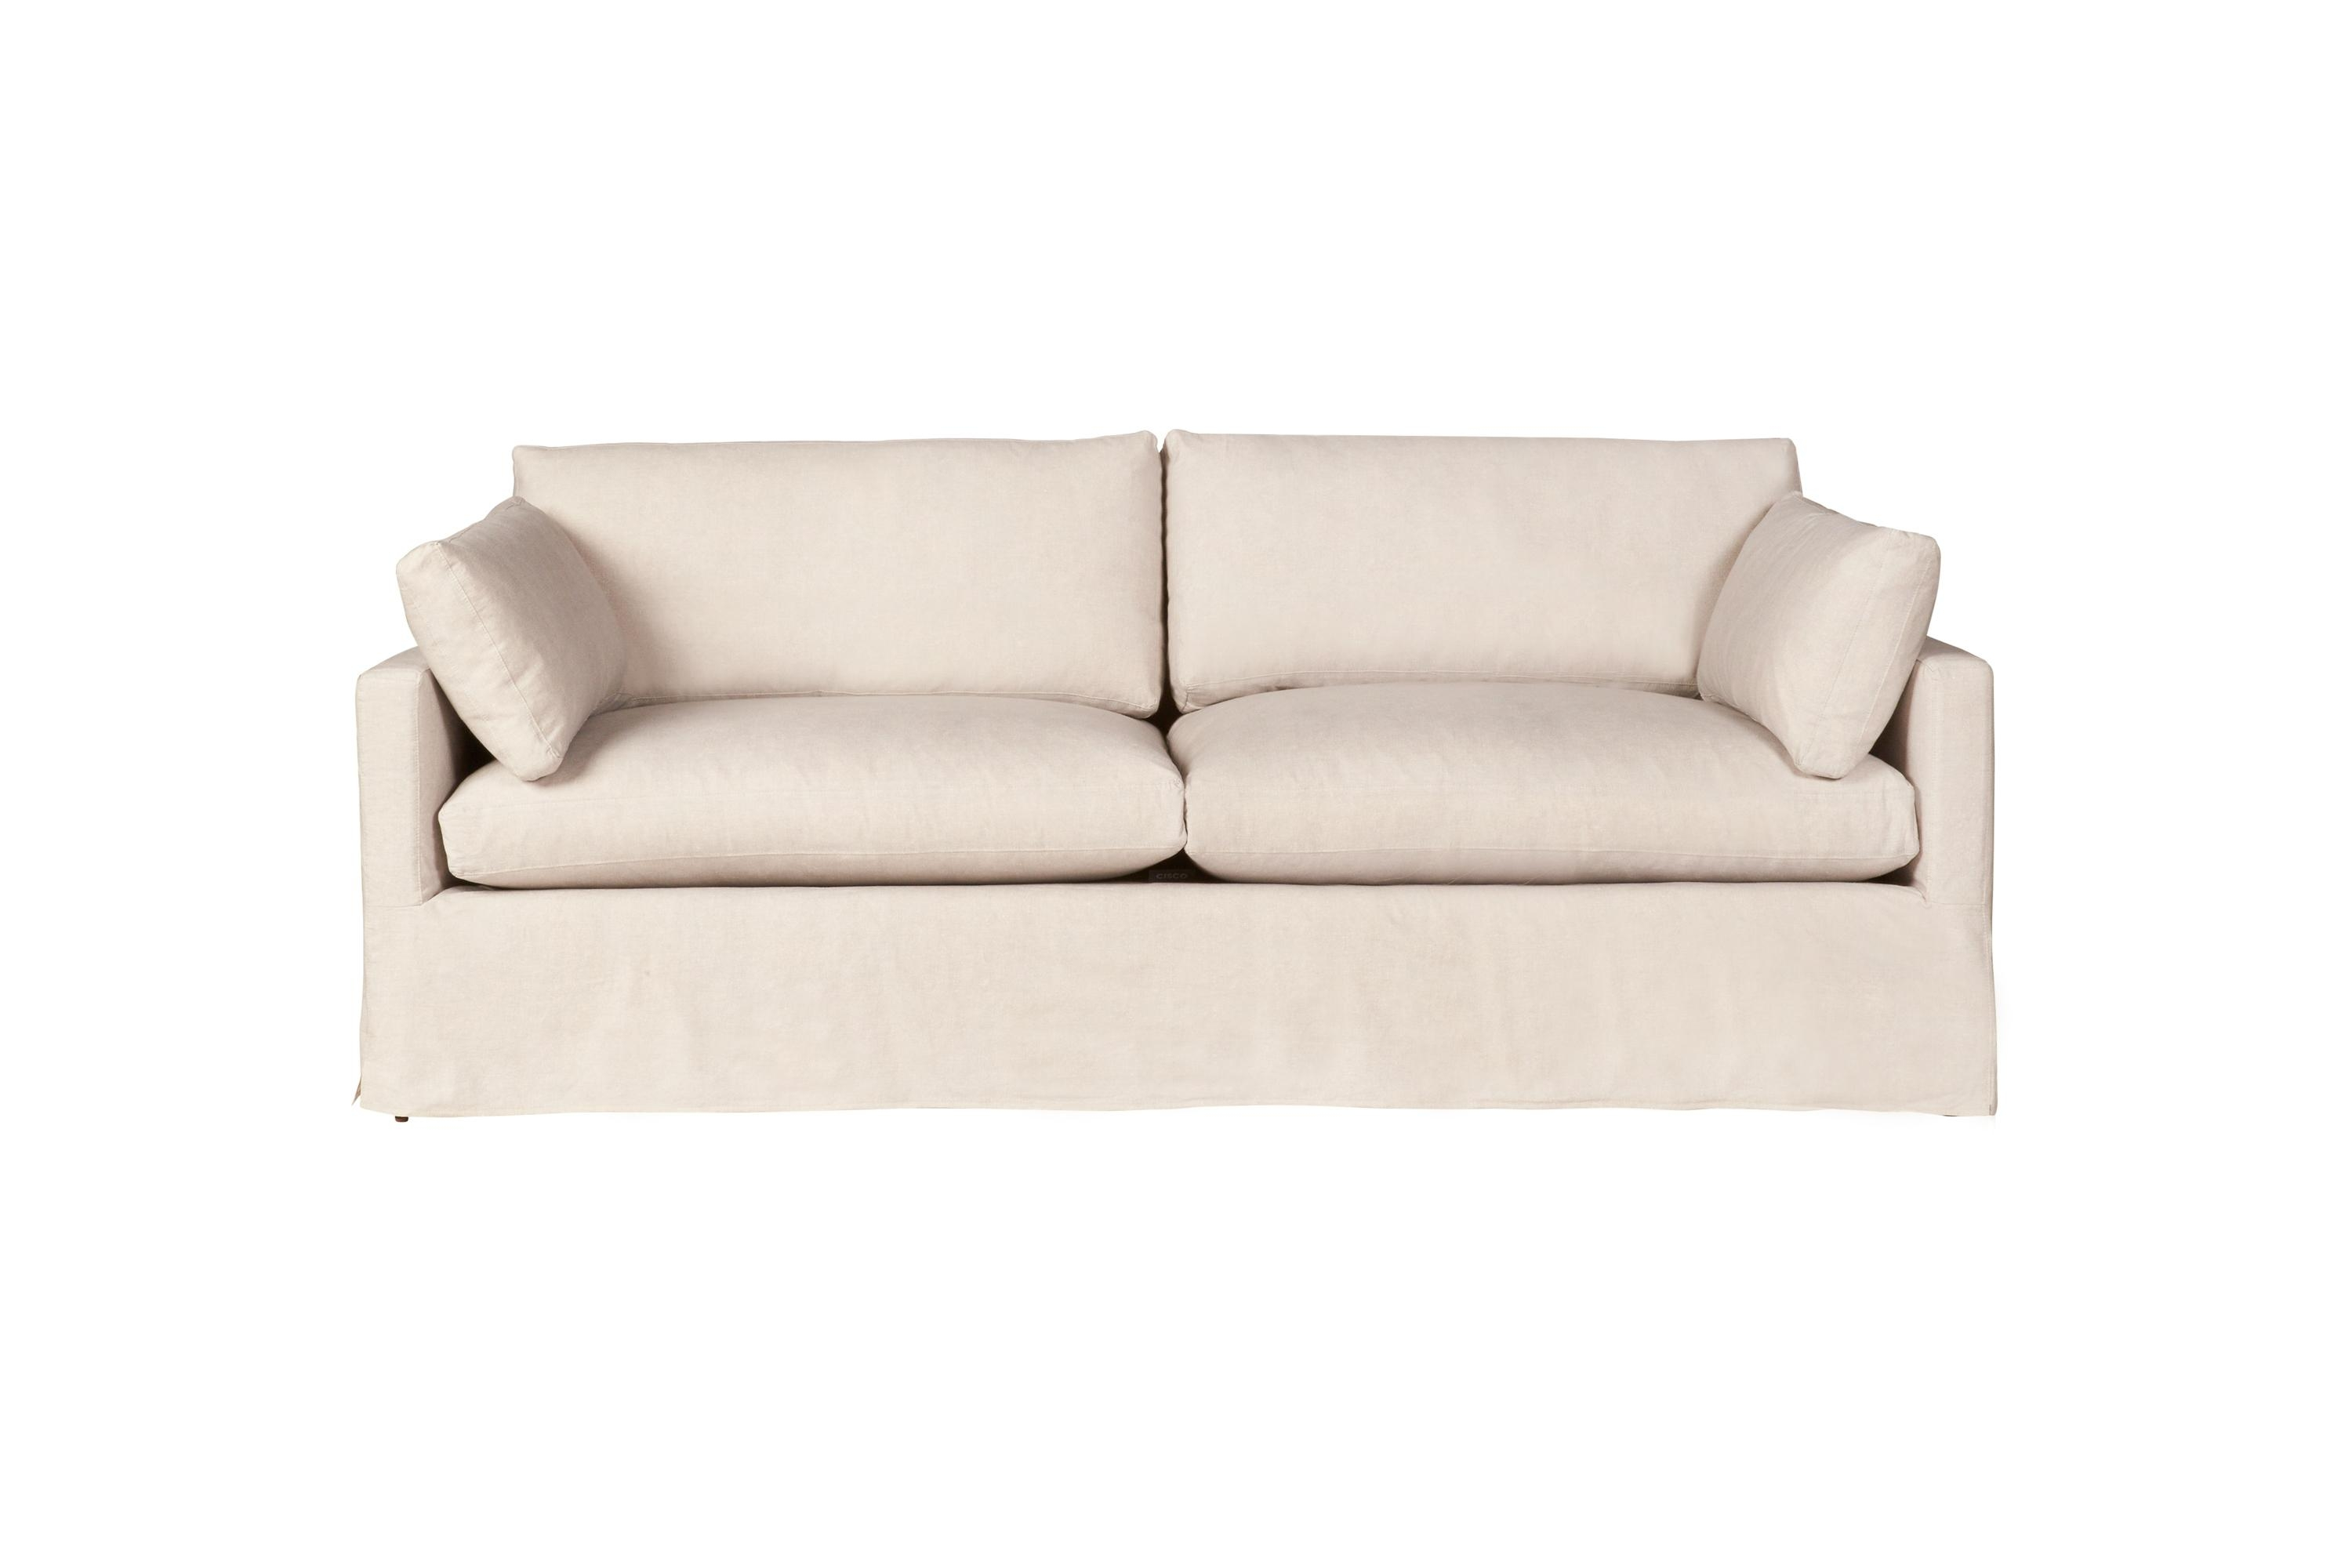 Sofas With Armless Sofa Slipcovers (View 6 of 20)